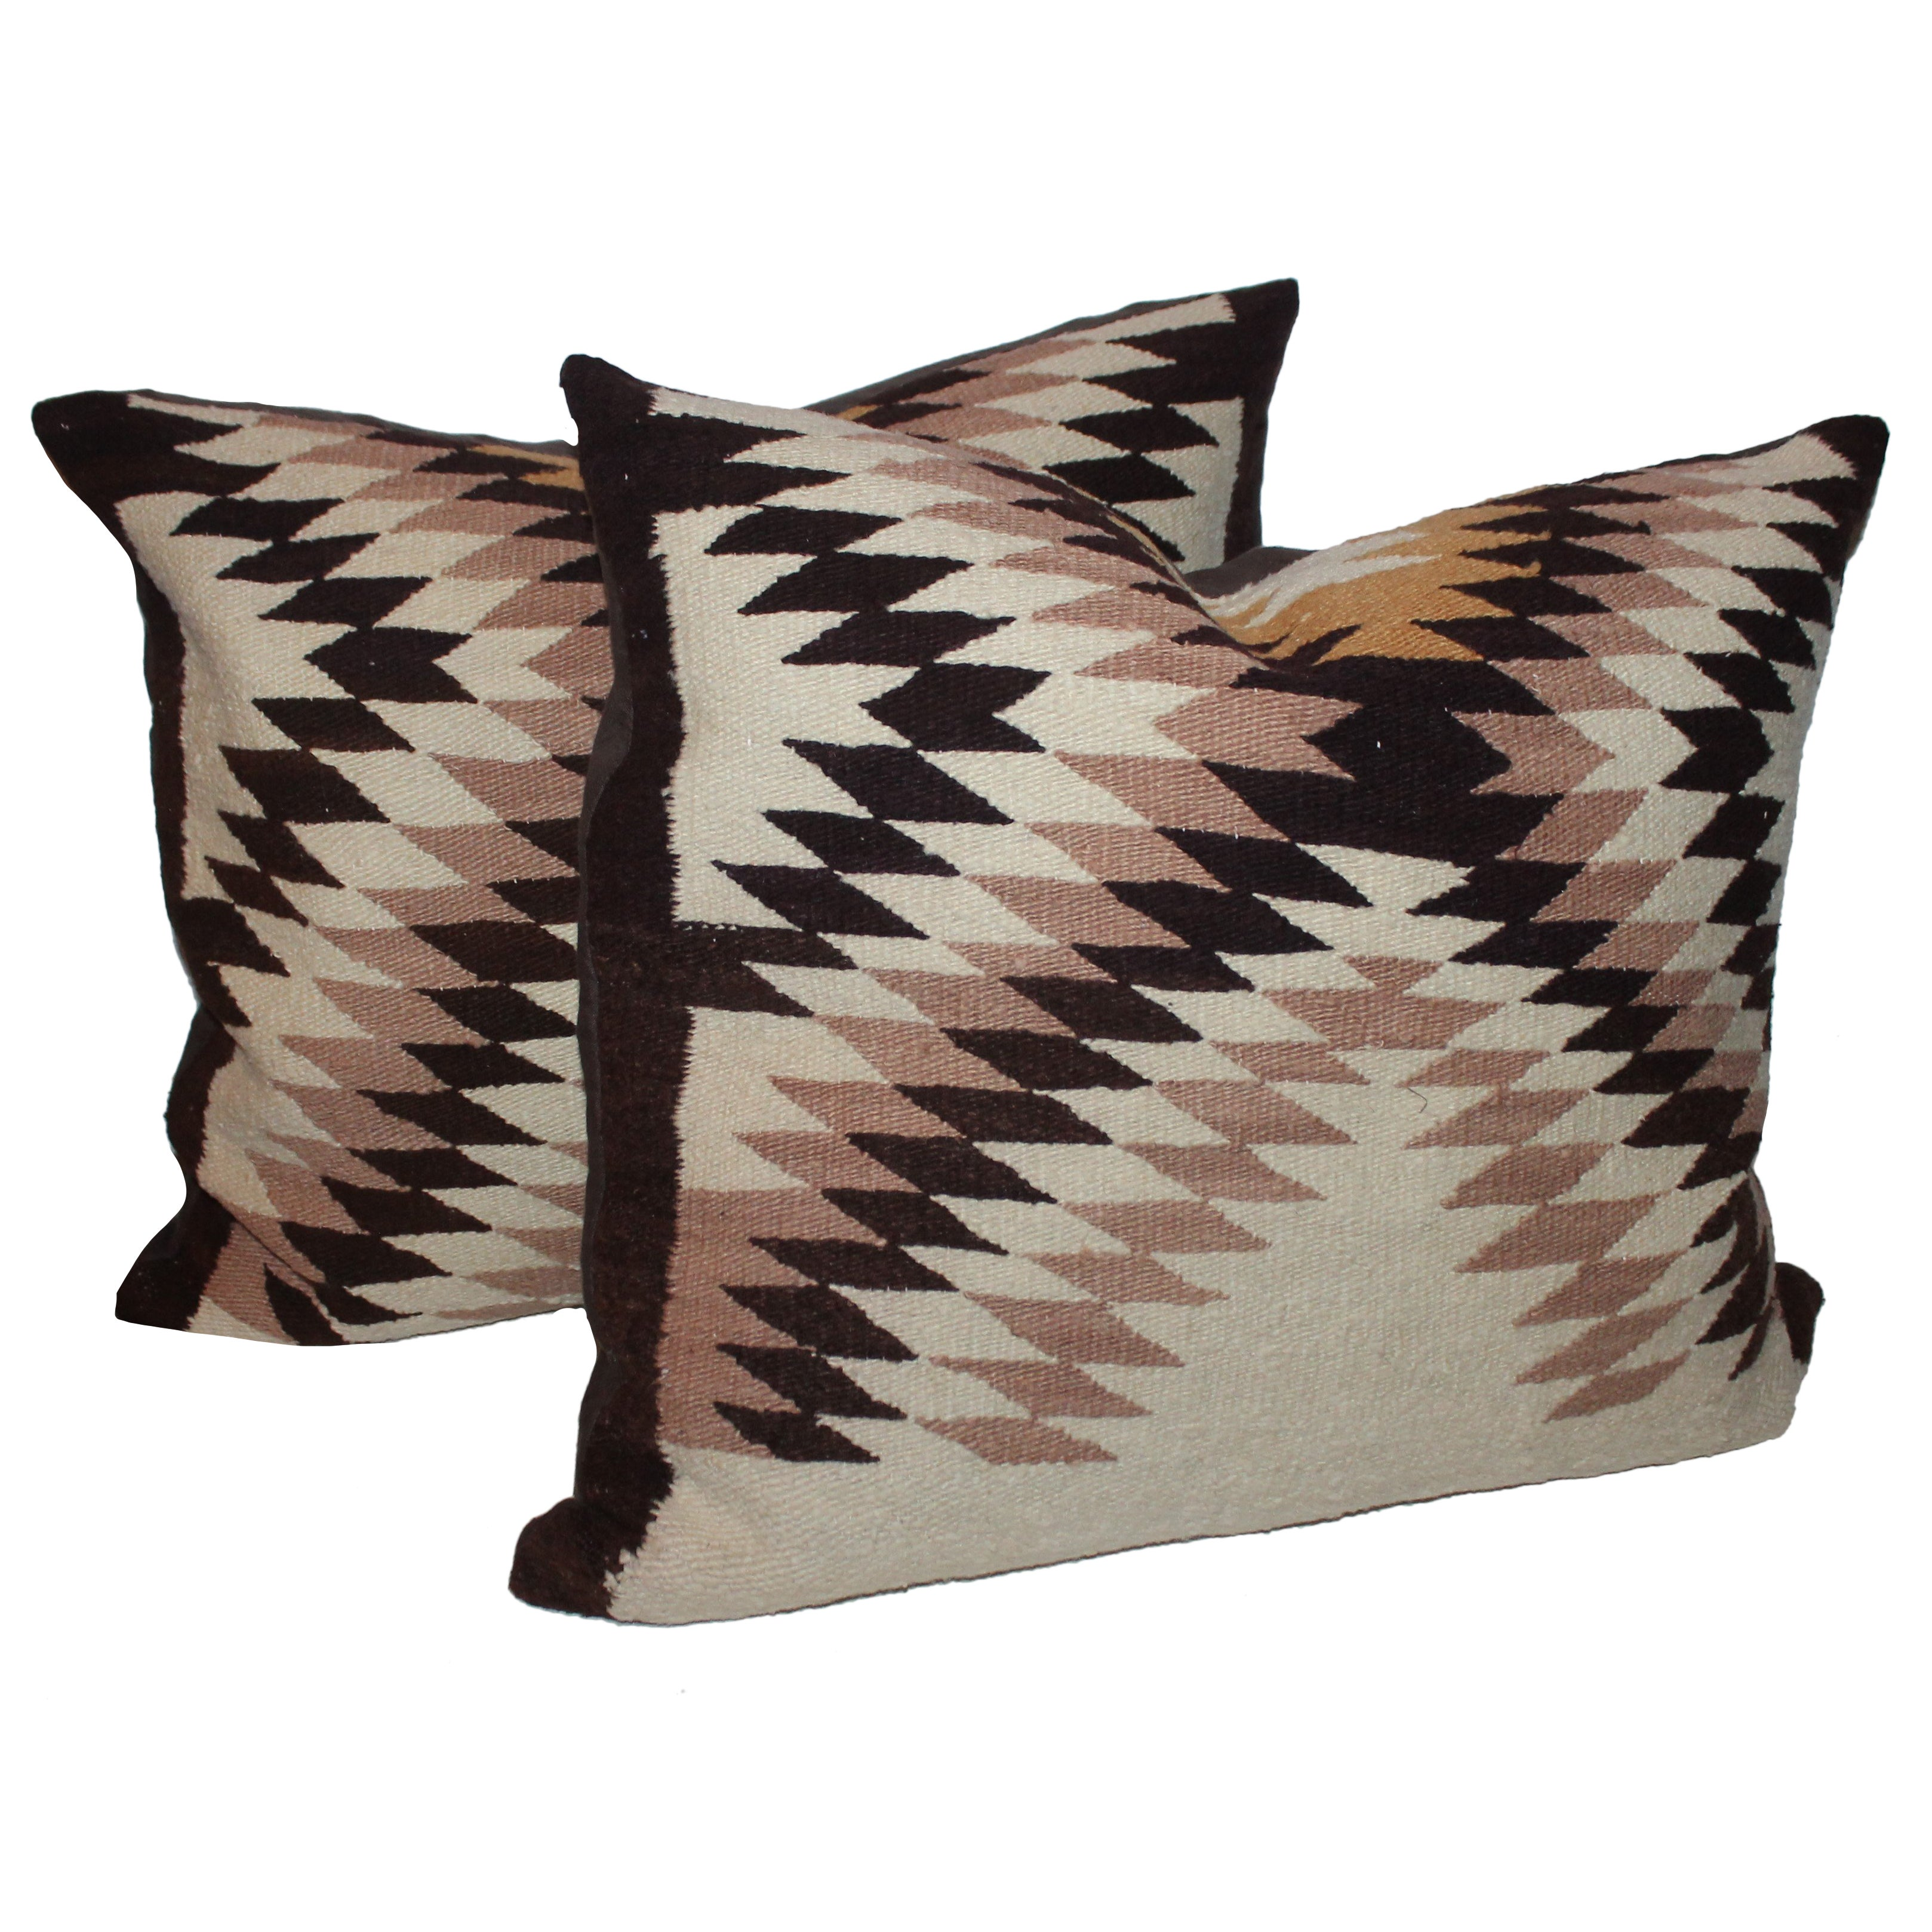 Pair of Eye Dazzlers  Navajo Indian Weaving Pillows